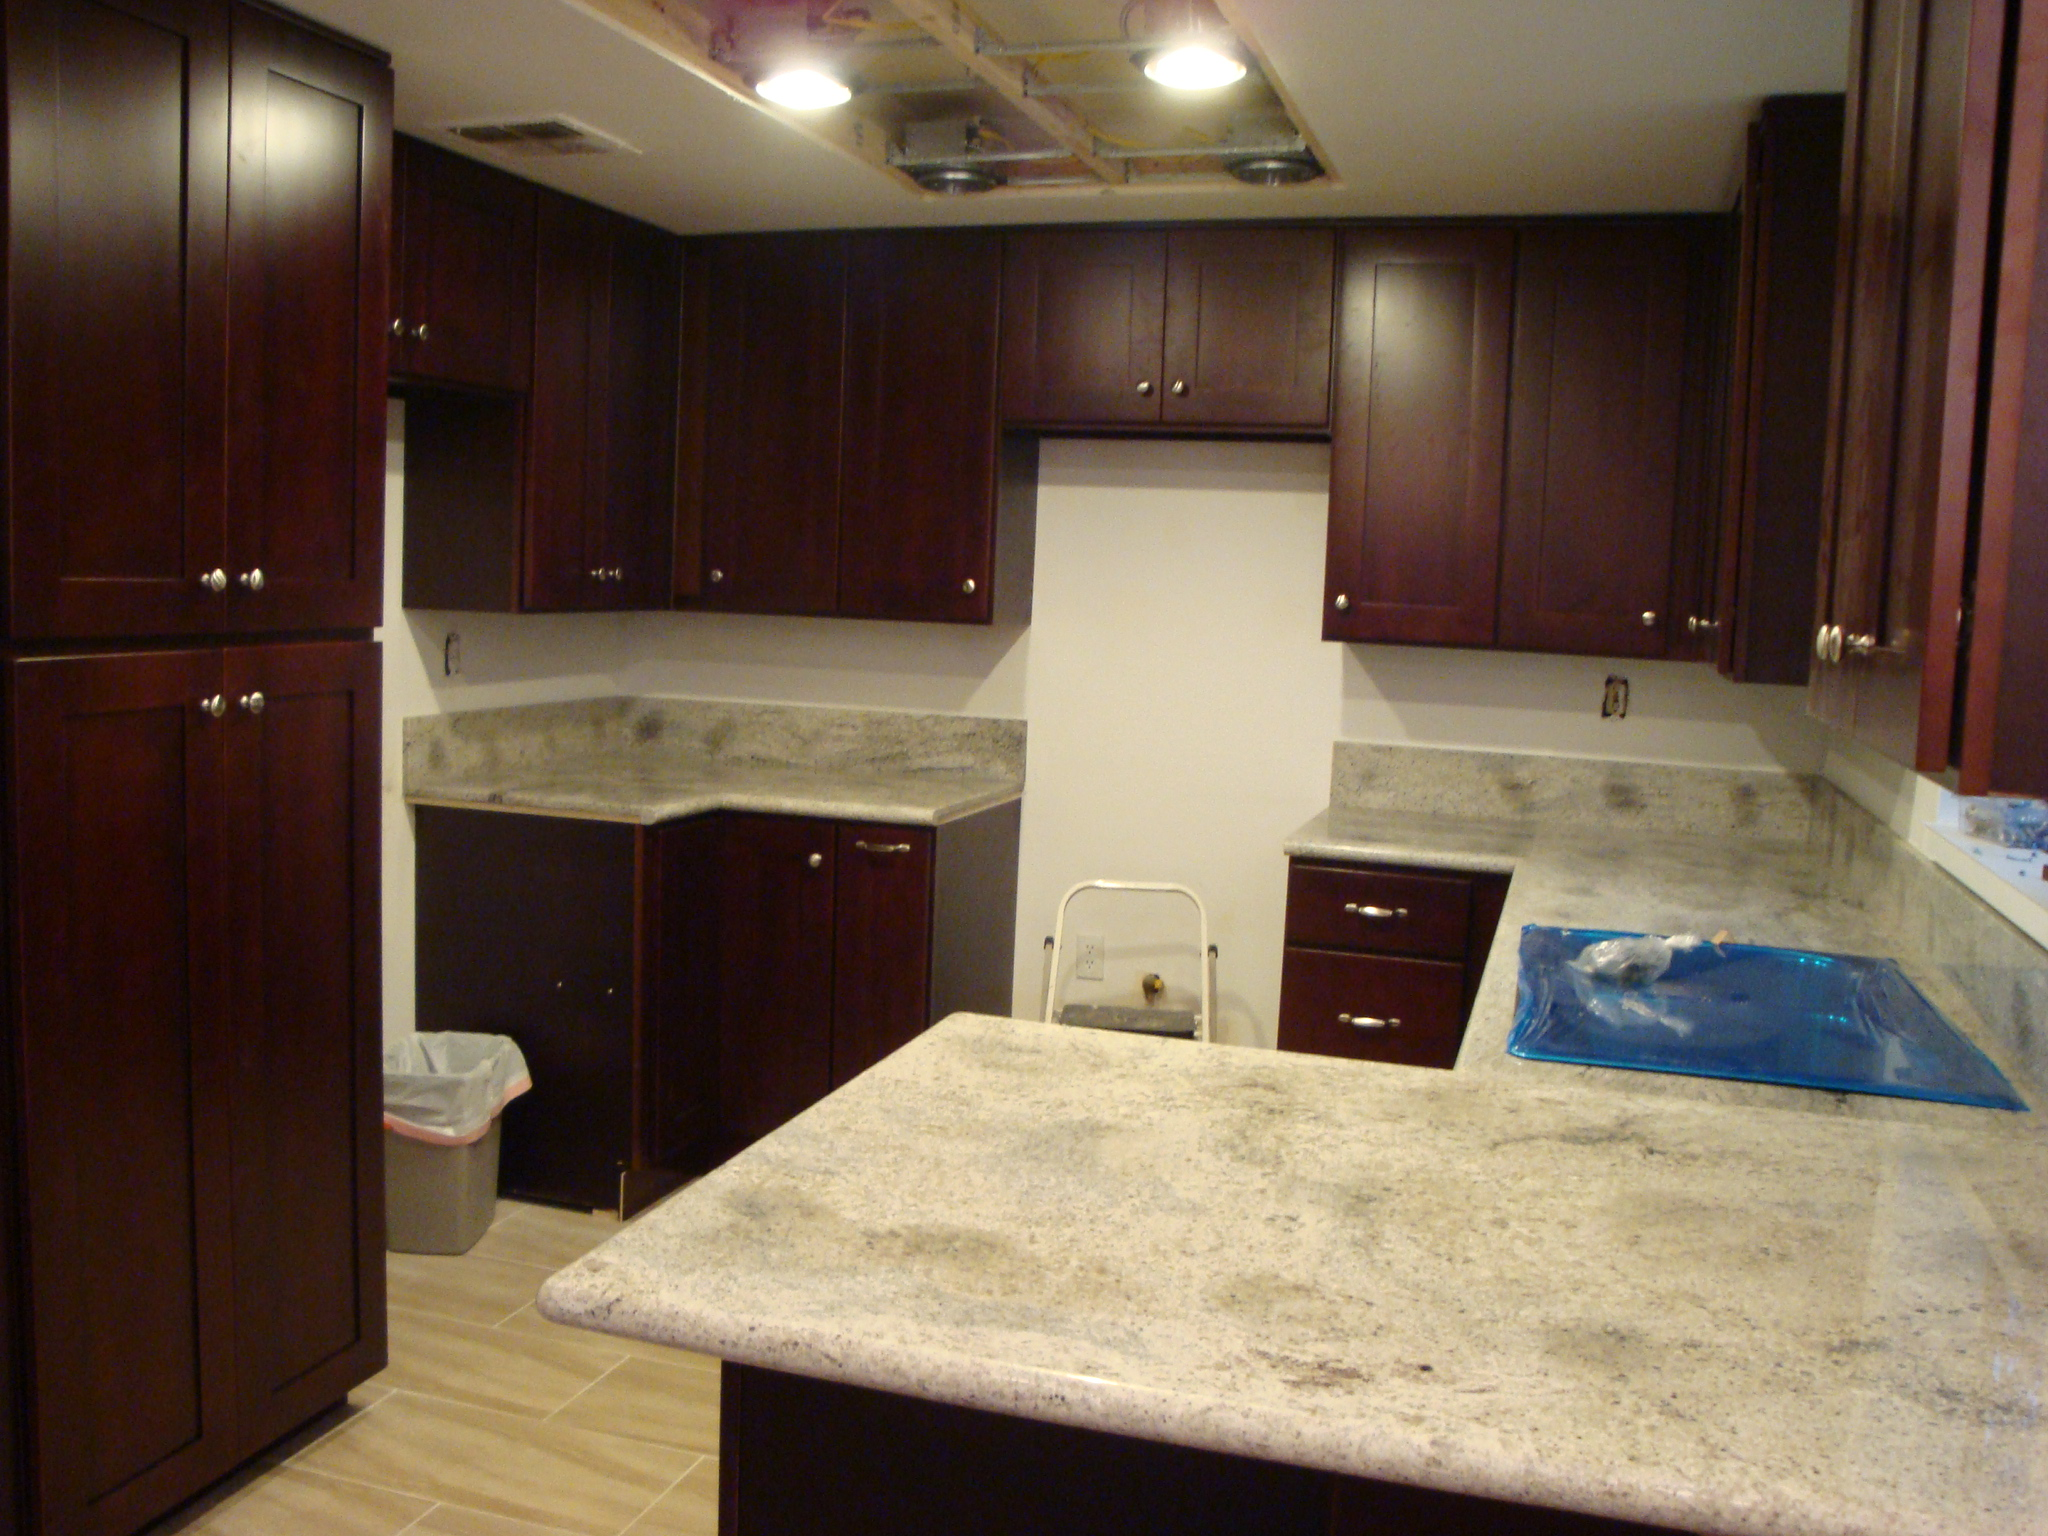 Cherry Shaker Cabinets & Kashmir White Granite Counter Tops | Santa Clarita